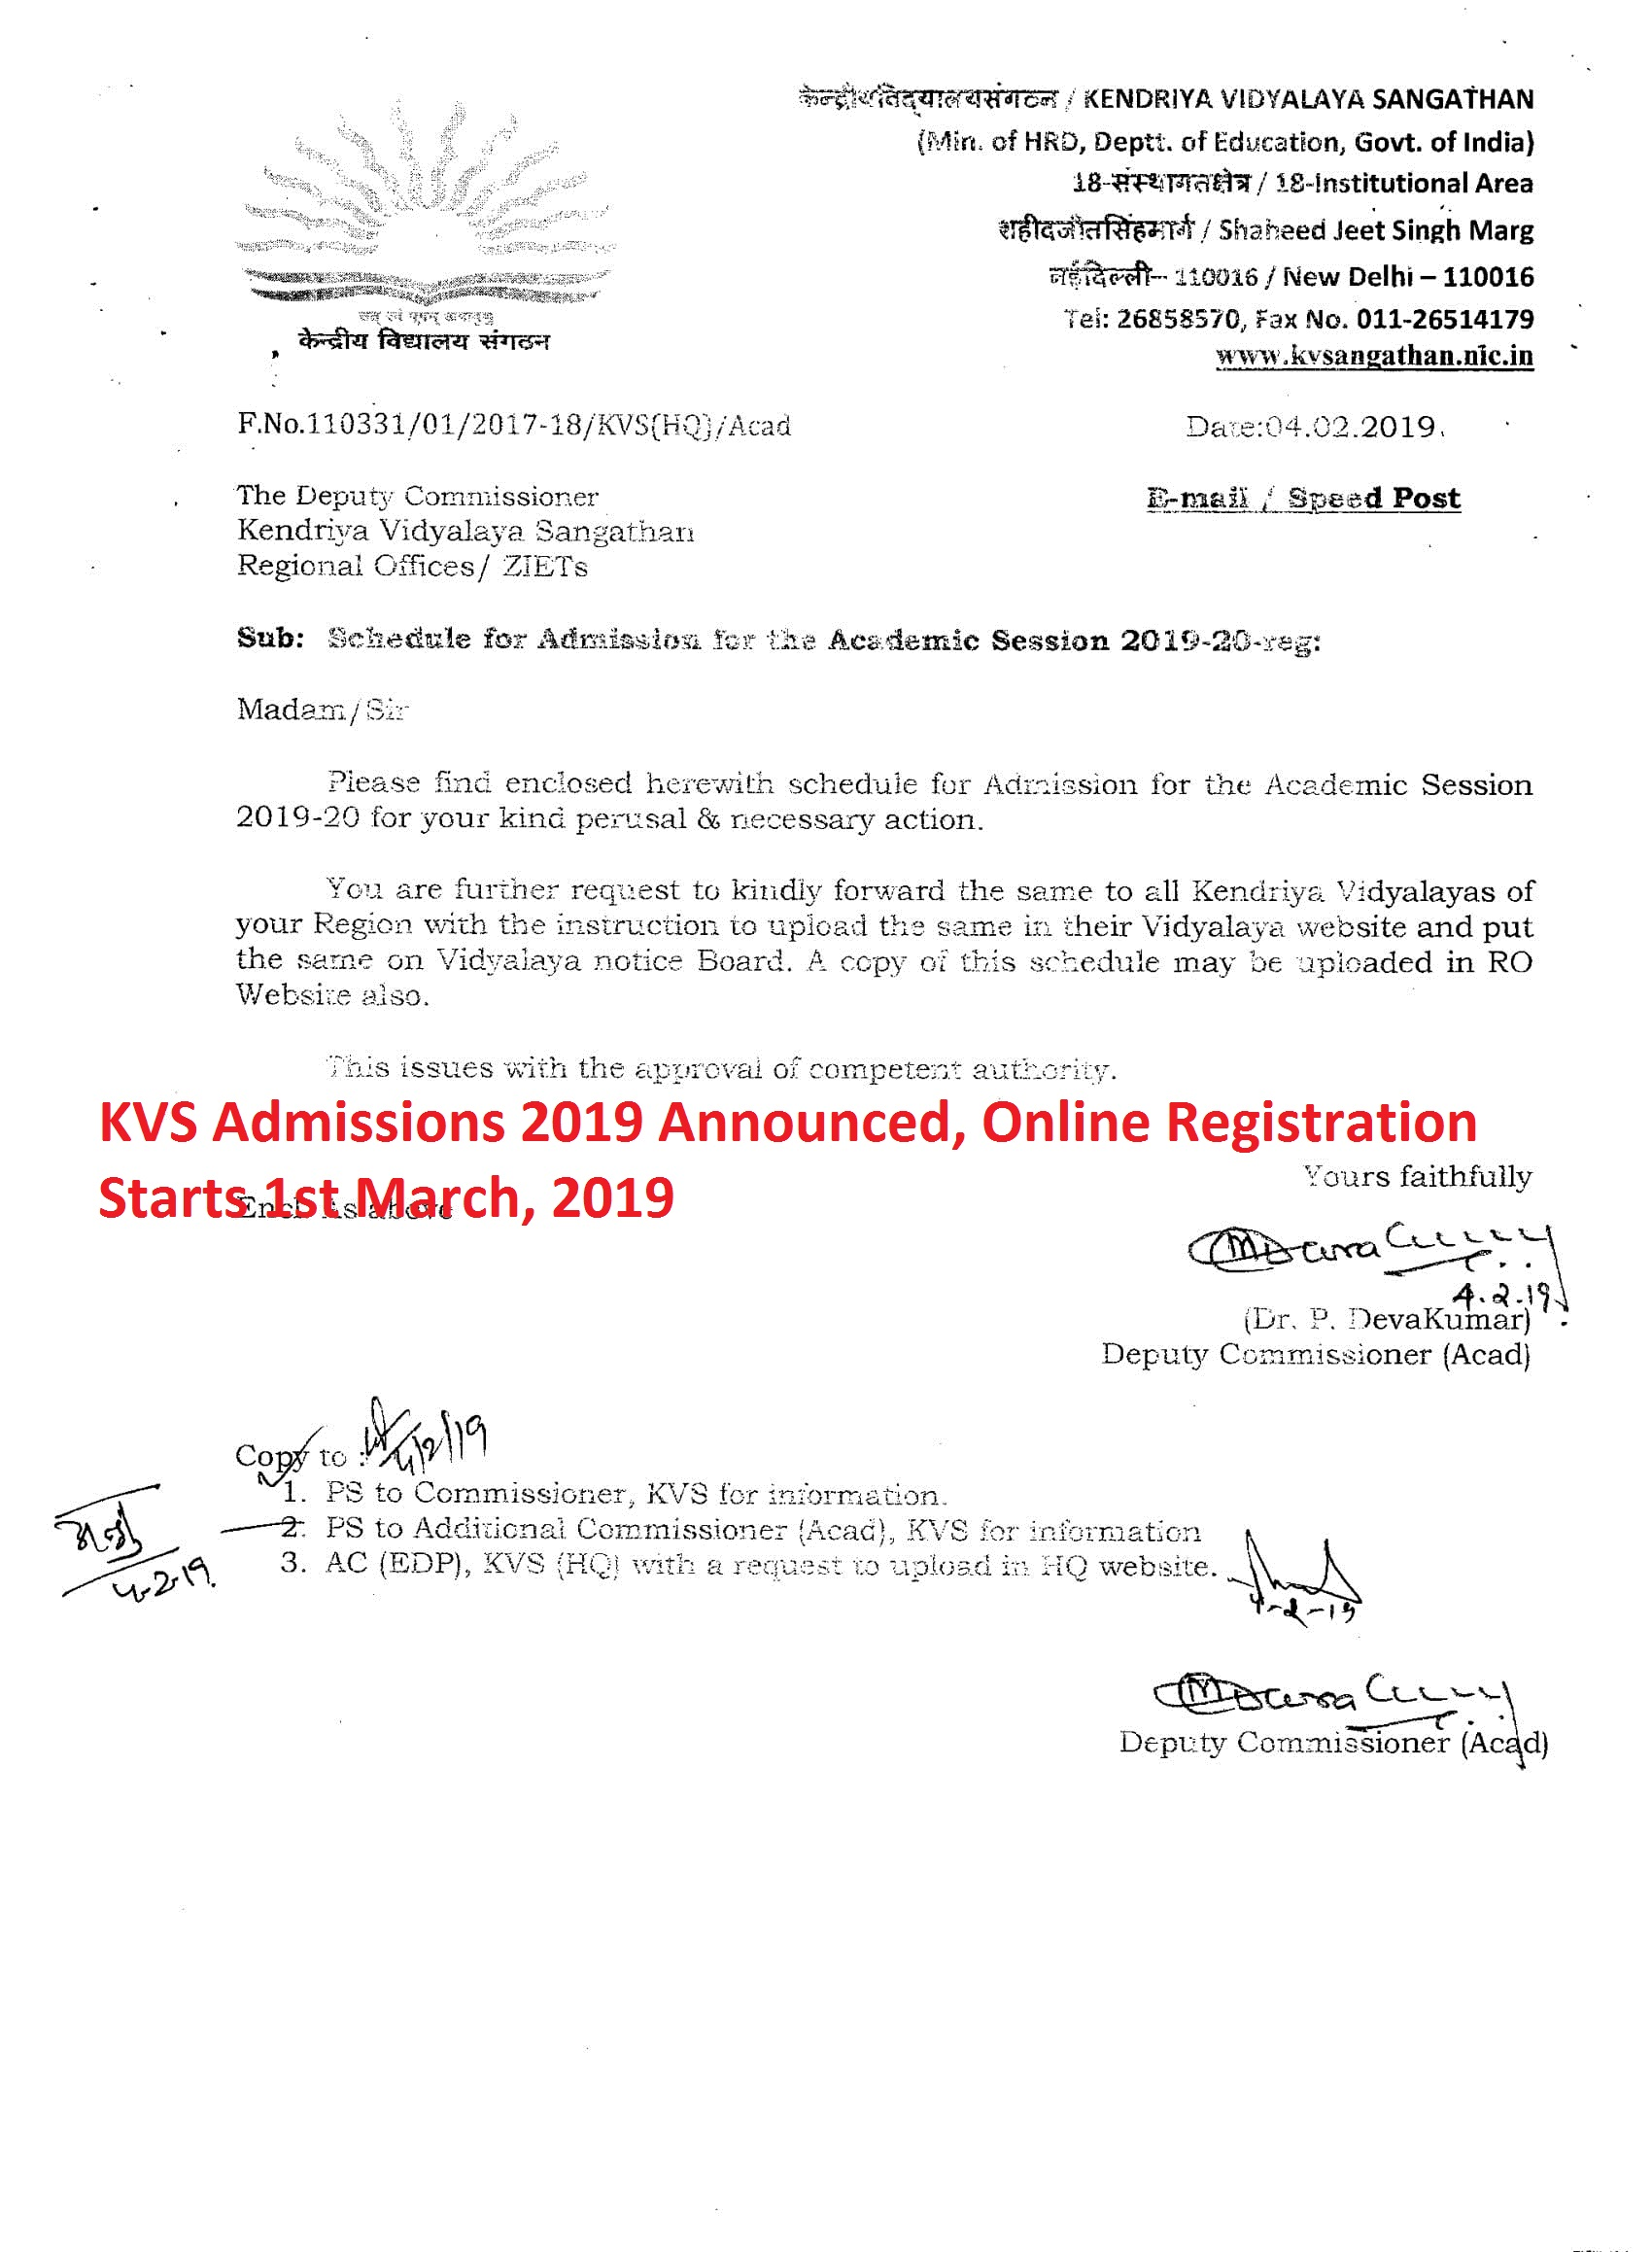 KVS Admissions 2019 Announced, Online Registration Starts 1st March, 2019